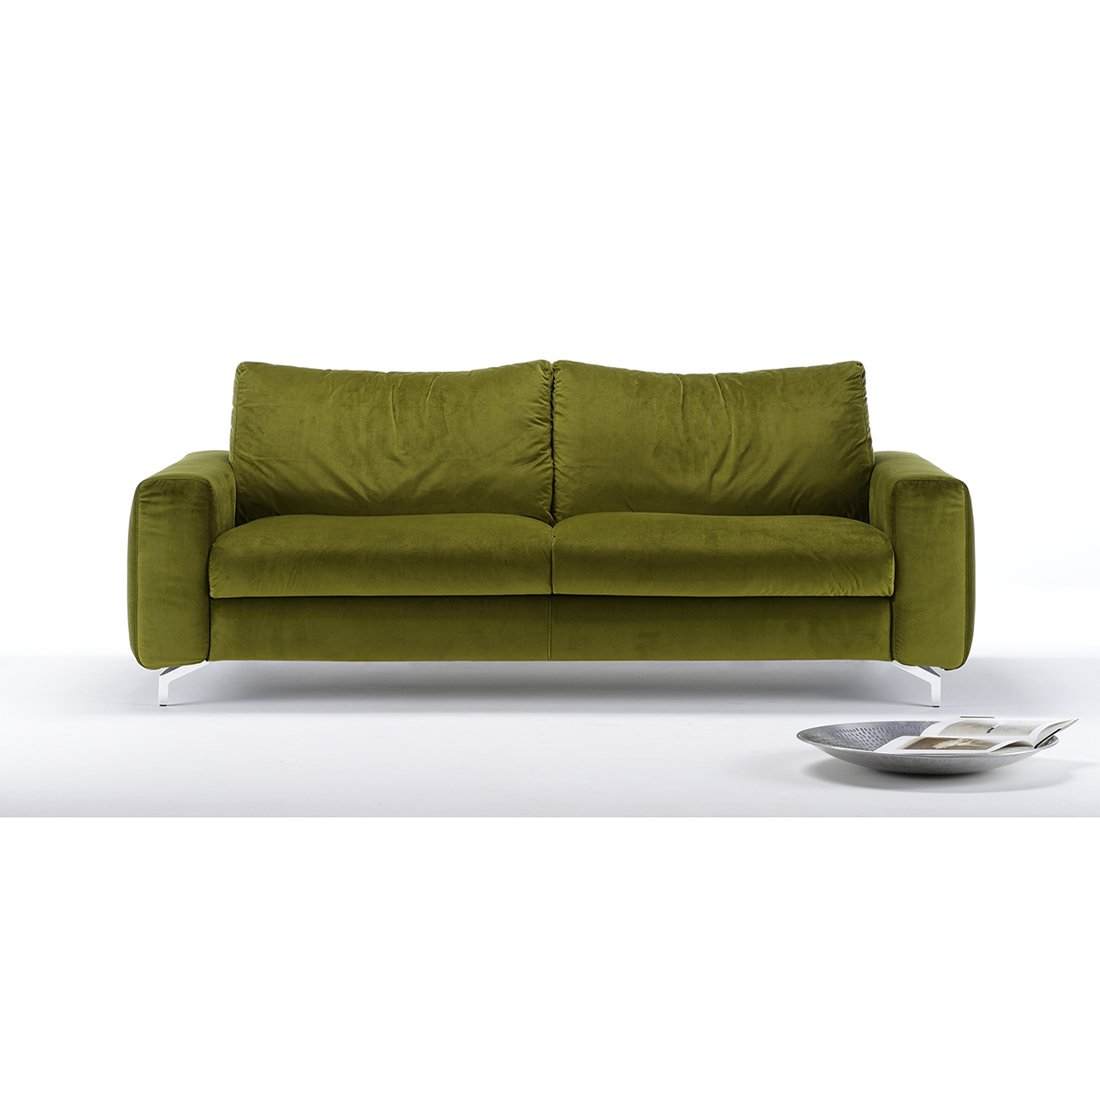 Canap velours convertible clarence meubles et atmosph re - Canape en velours ...